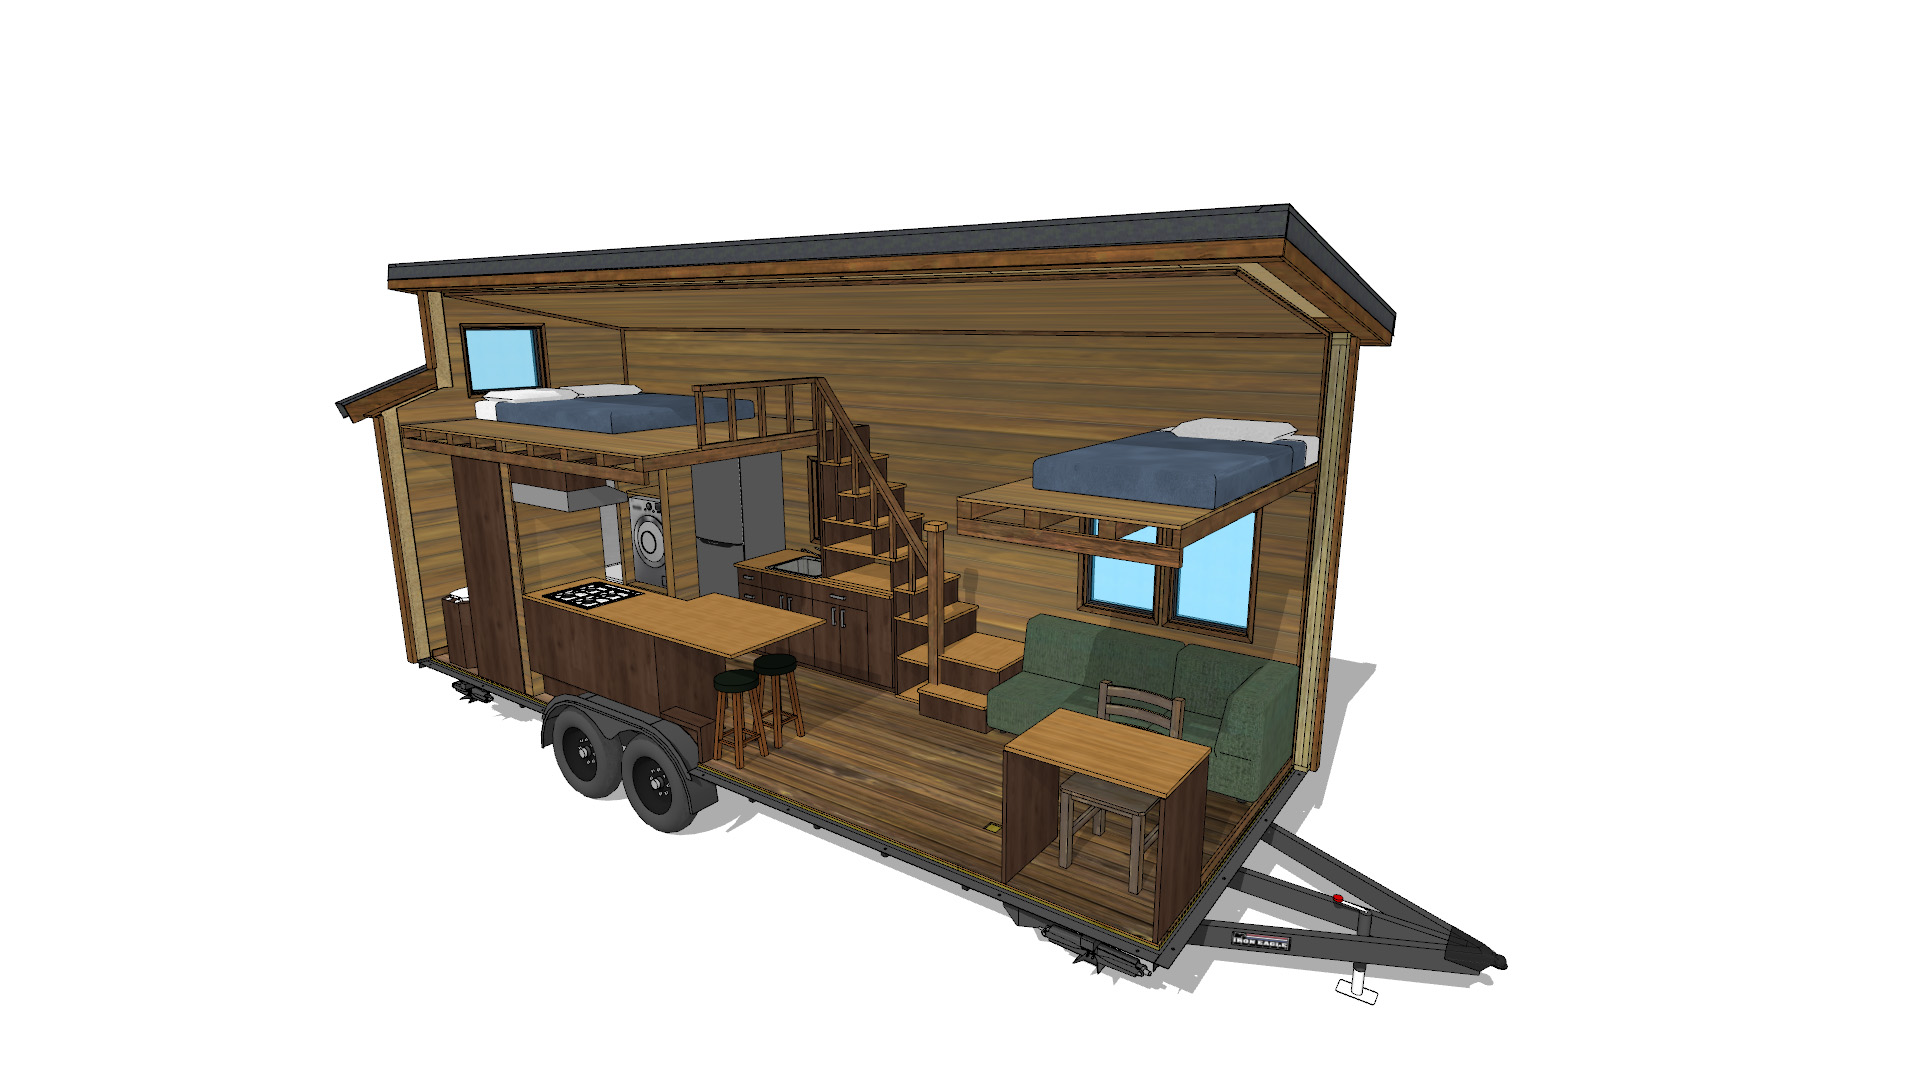 Tiny House Interieur Cider Box Tiny House Plans 40 Off Now With Editable 3d